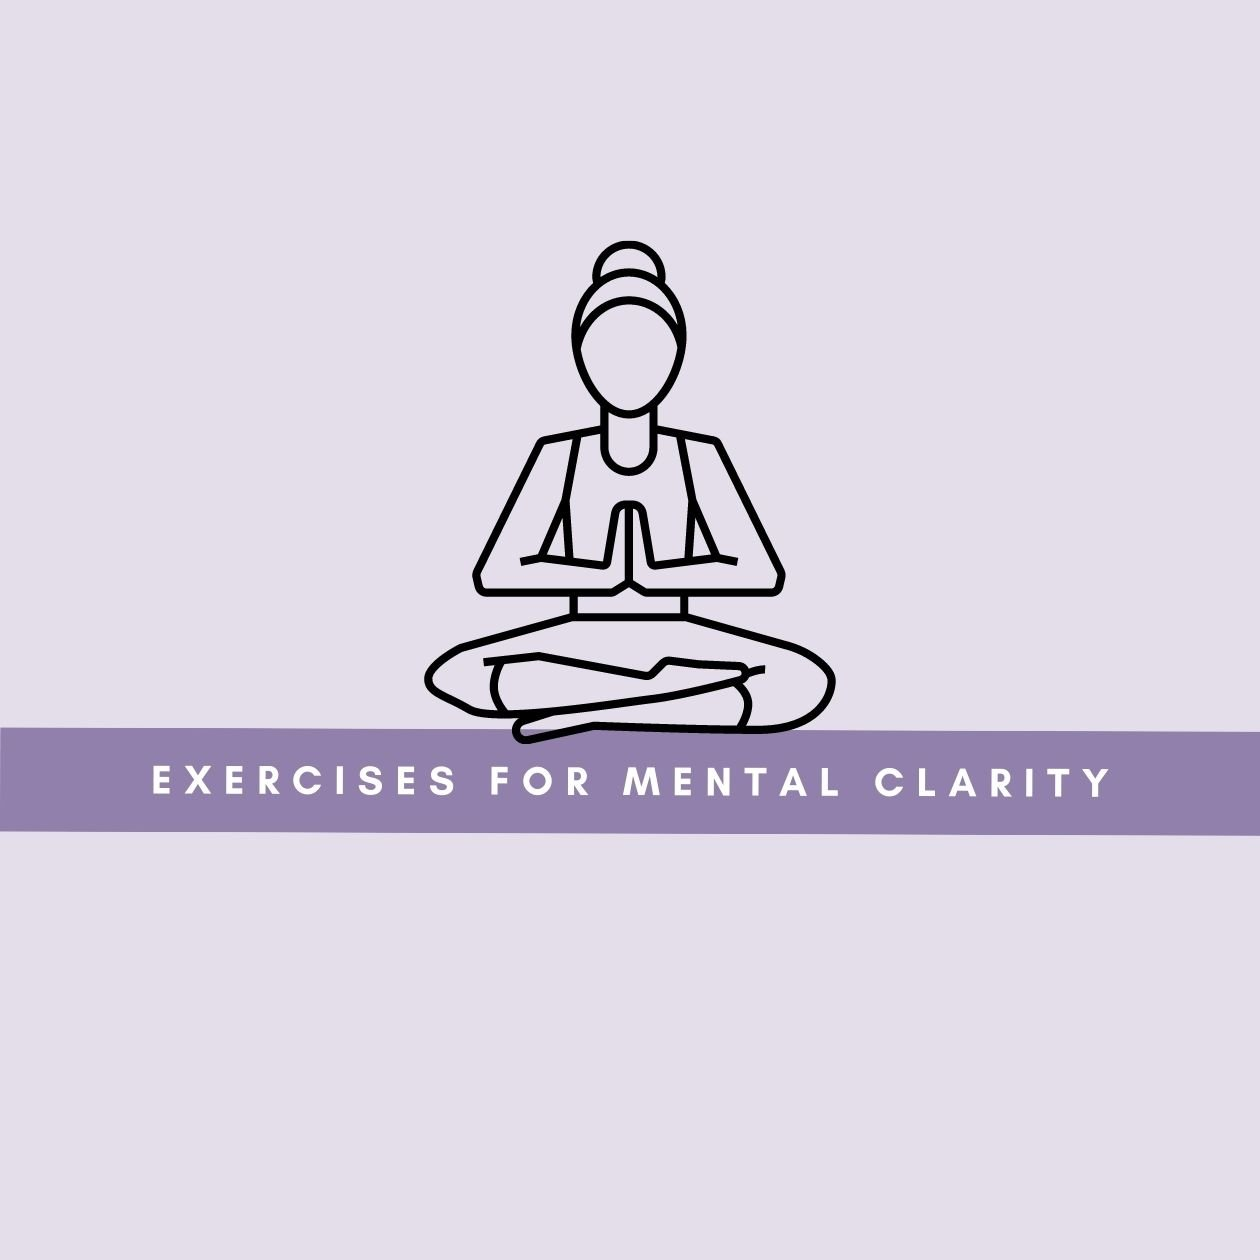 Exercises for mental clarity: an illustration